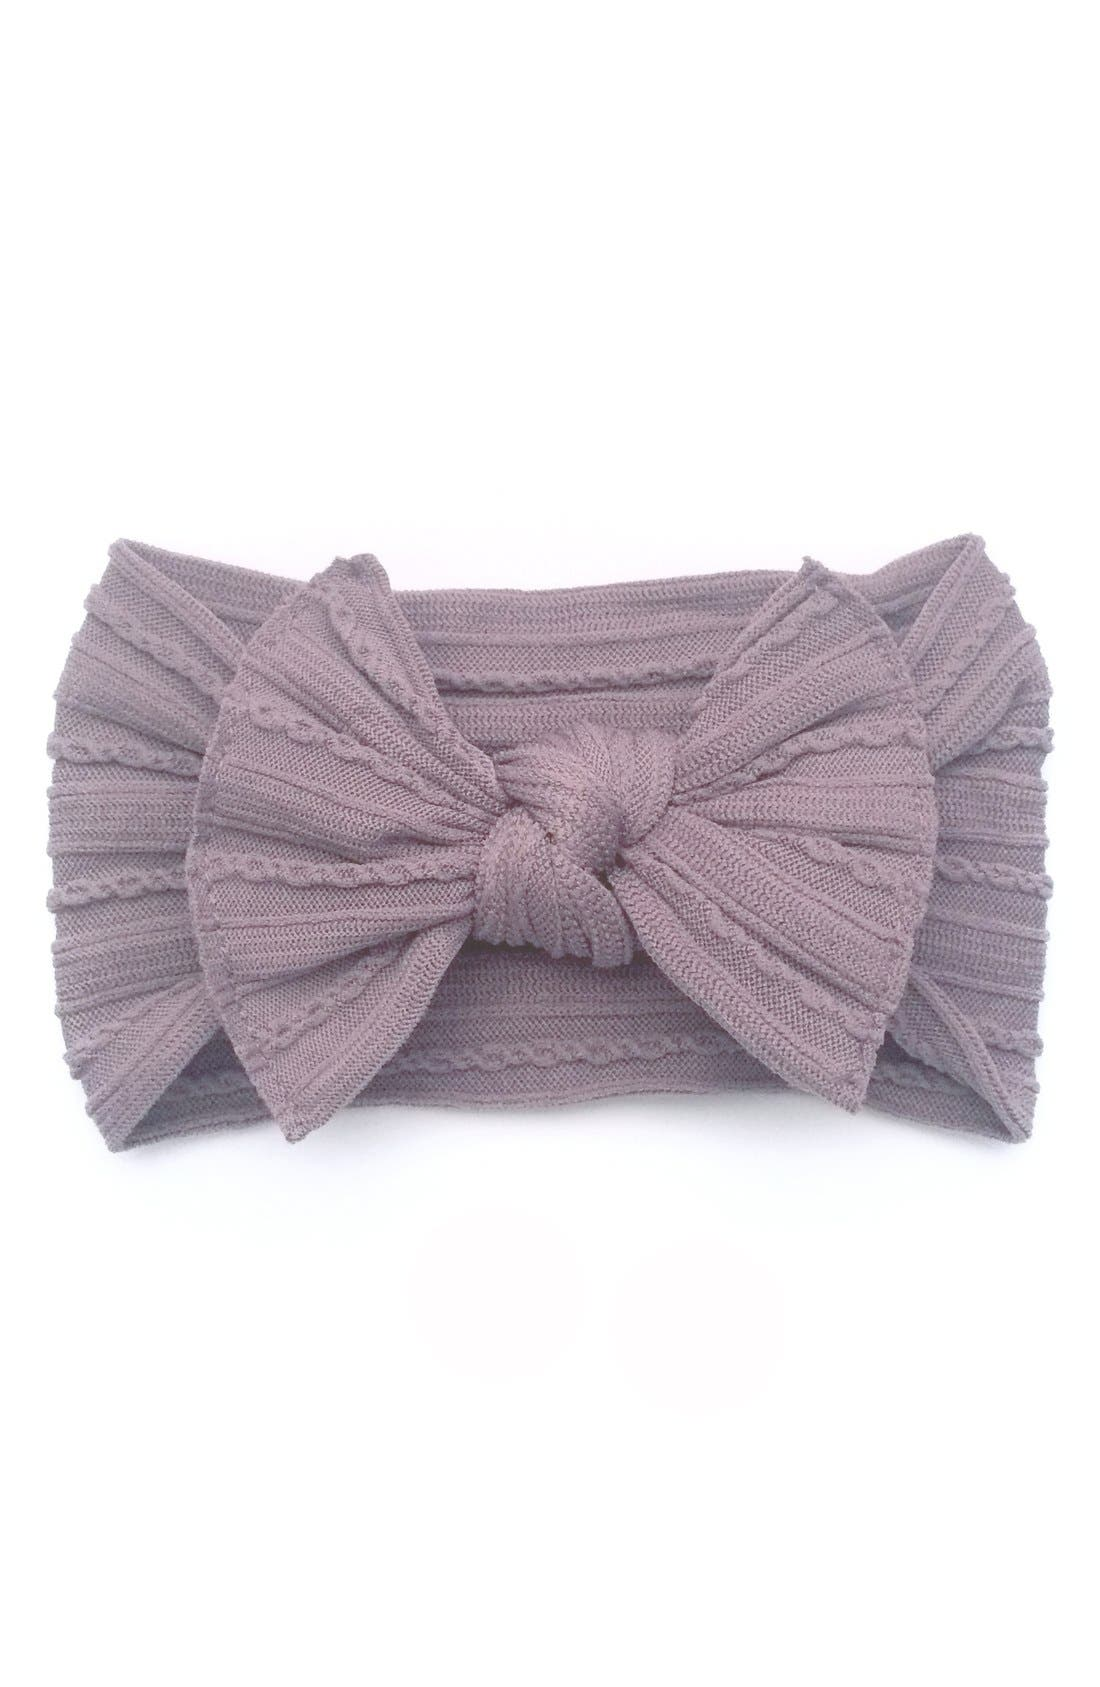 Main Image - Baby Bling Cable Knit Bow Headband (Baby Girls)